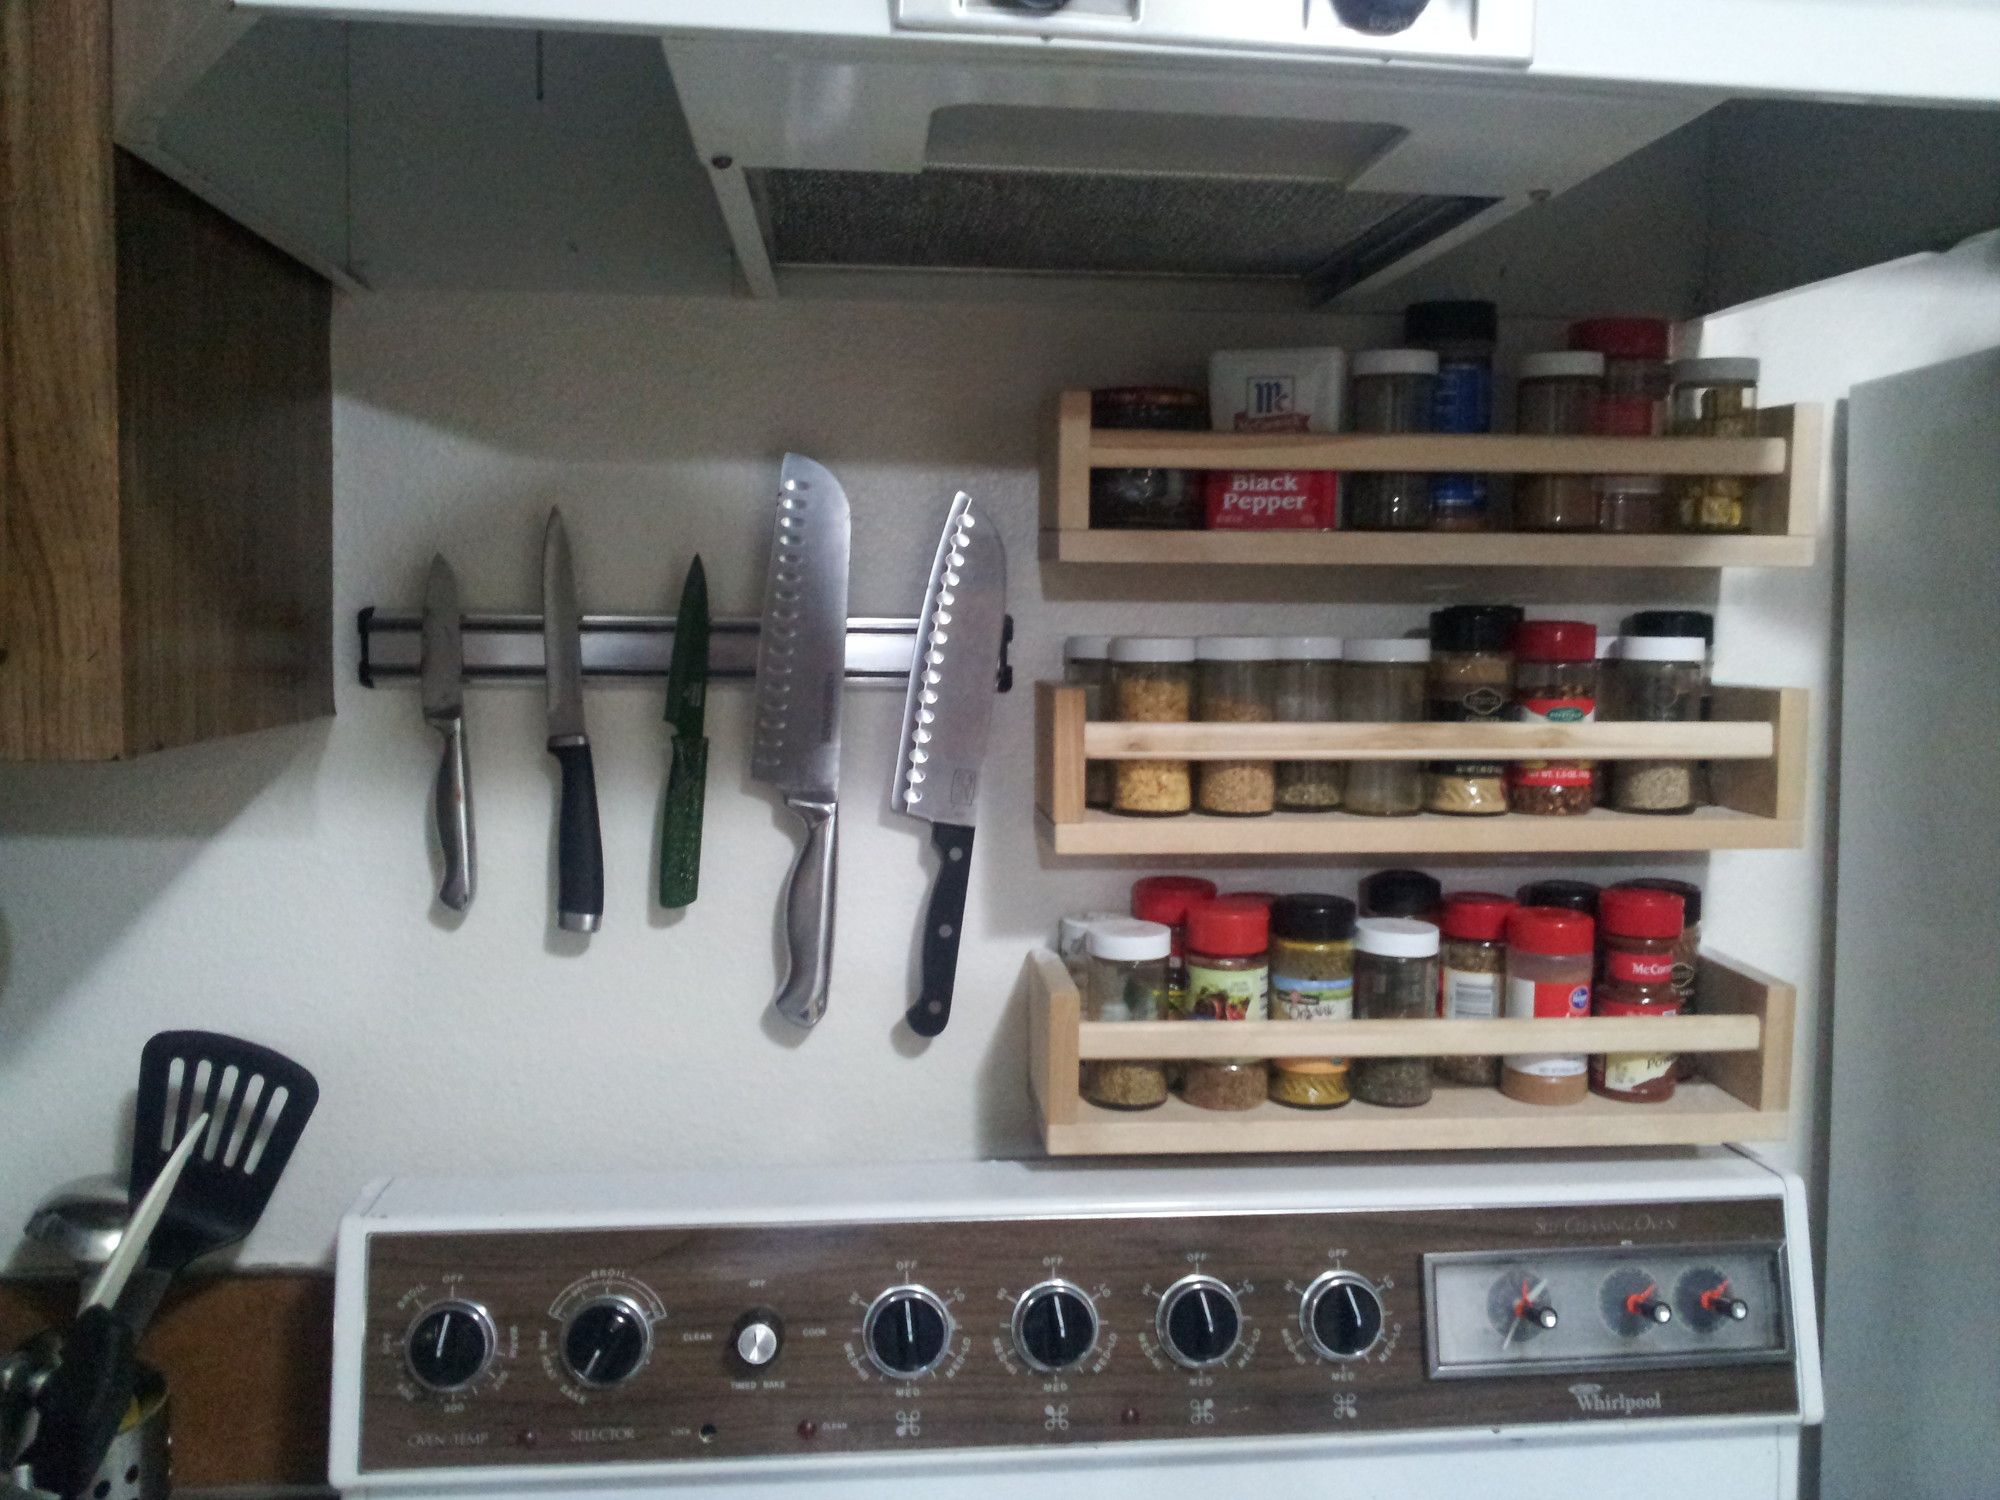 Knives And Spice Racks Above Stove Spice Rack Above Stove Wooden Spice Rack Spice Rack